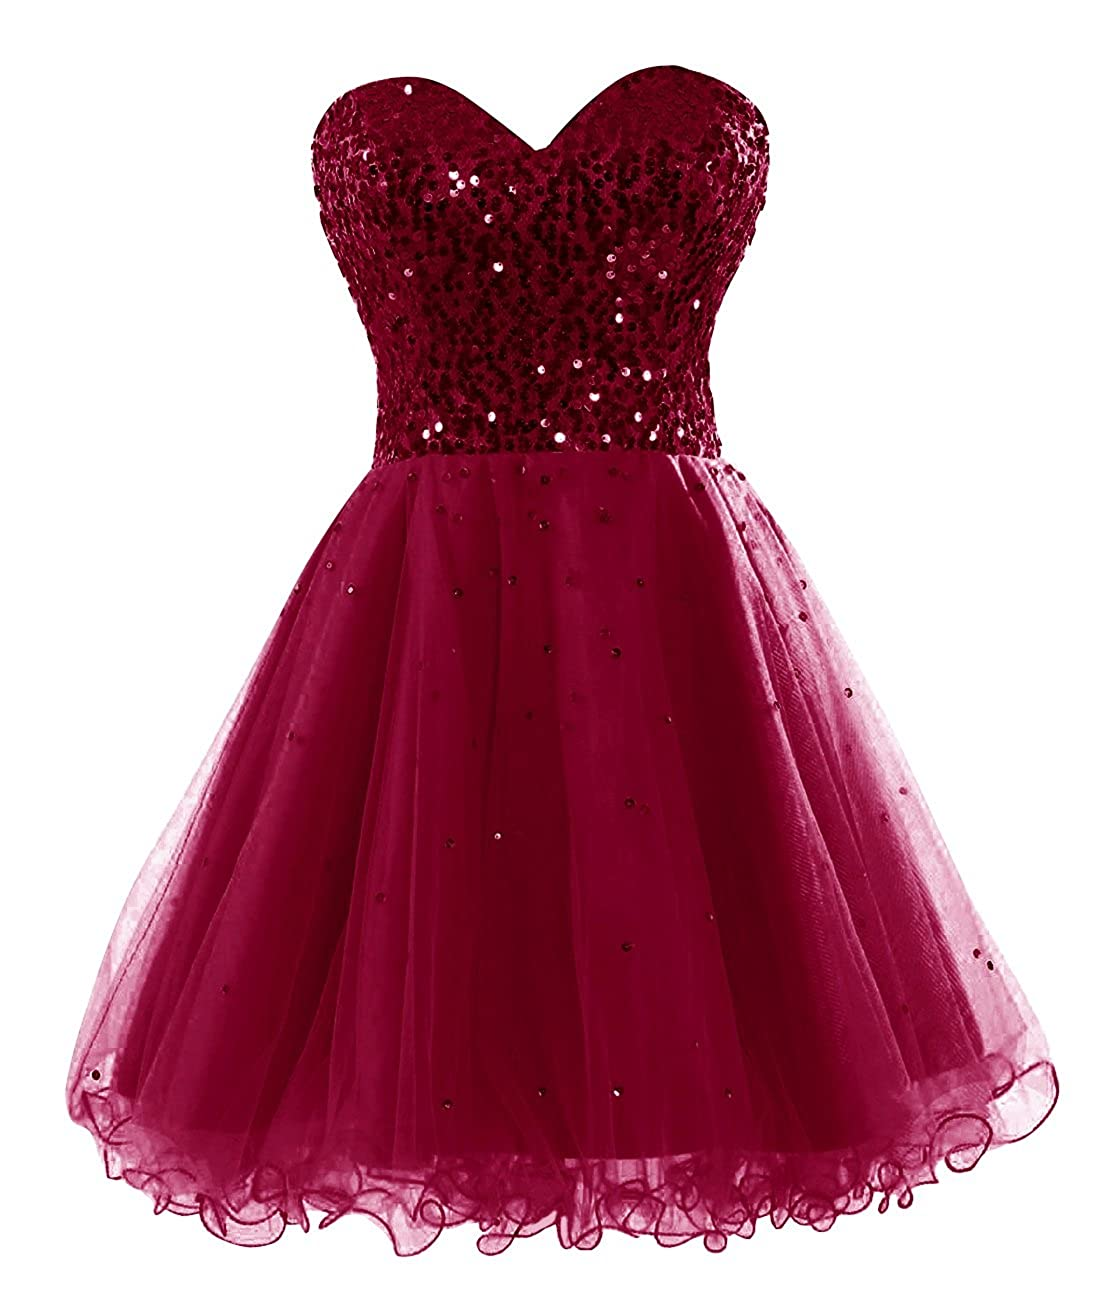 Burgundy Bess Bridal Women's Sequined Lace Up Tulle Short Prom Homecoming Dresses